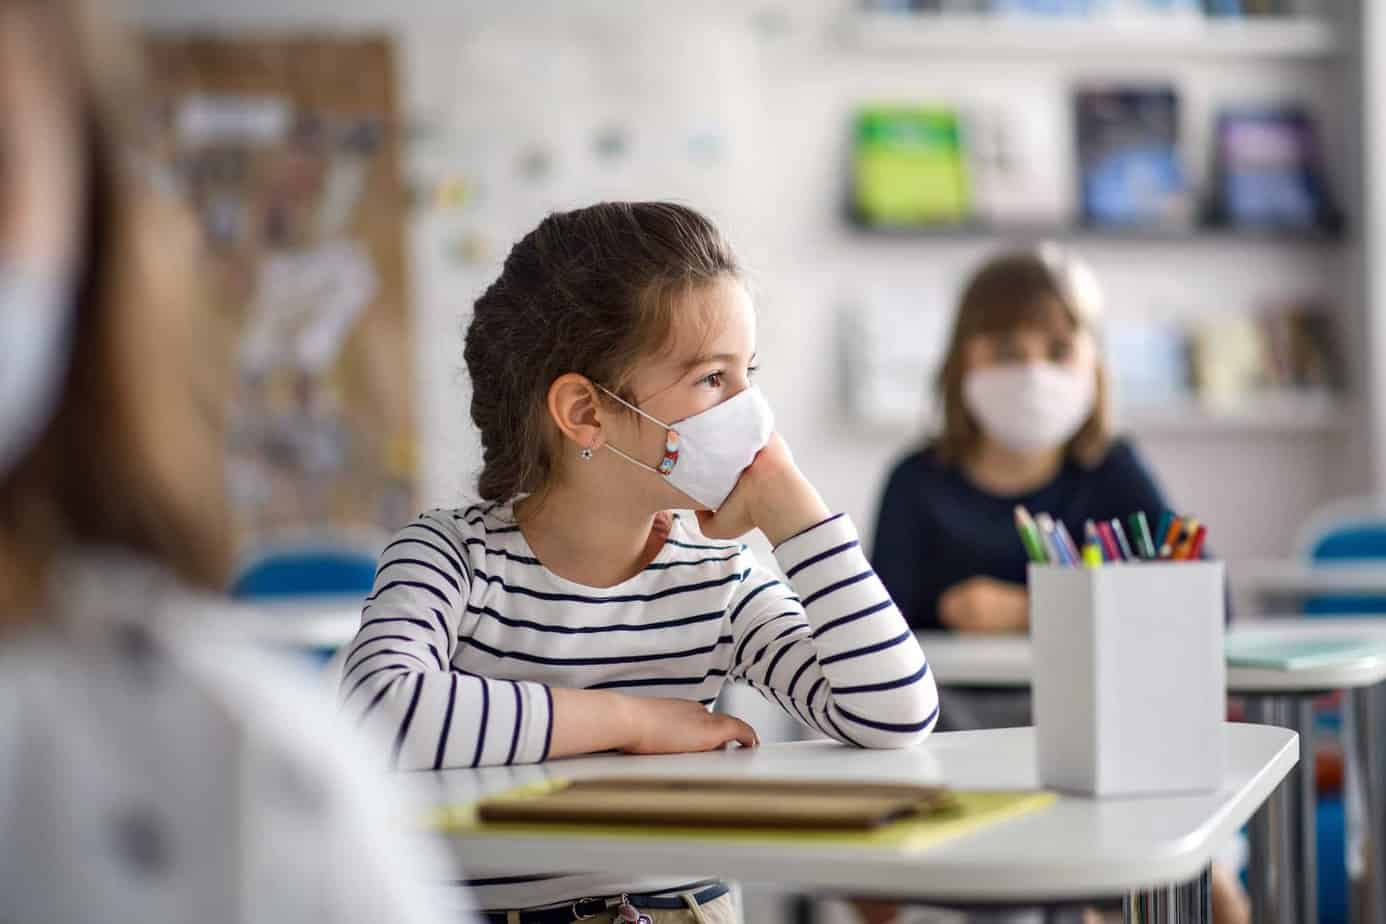 School is going to look a little different this year, which can cause a lot of big emotions in kids. How to prepare kids for the school year and curb anxiety and overwhelm.